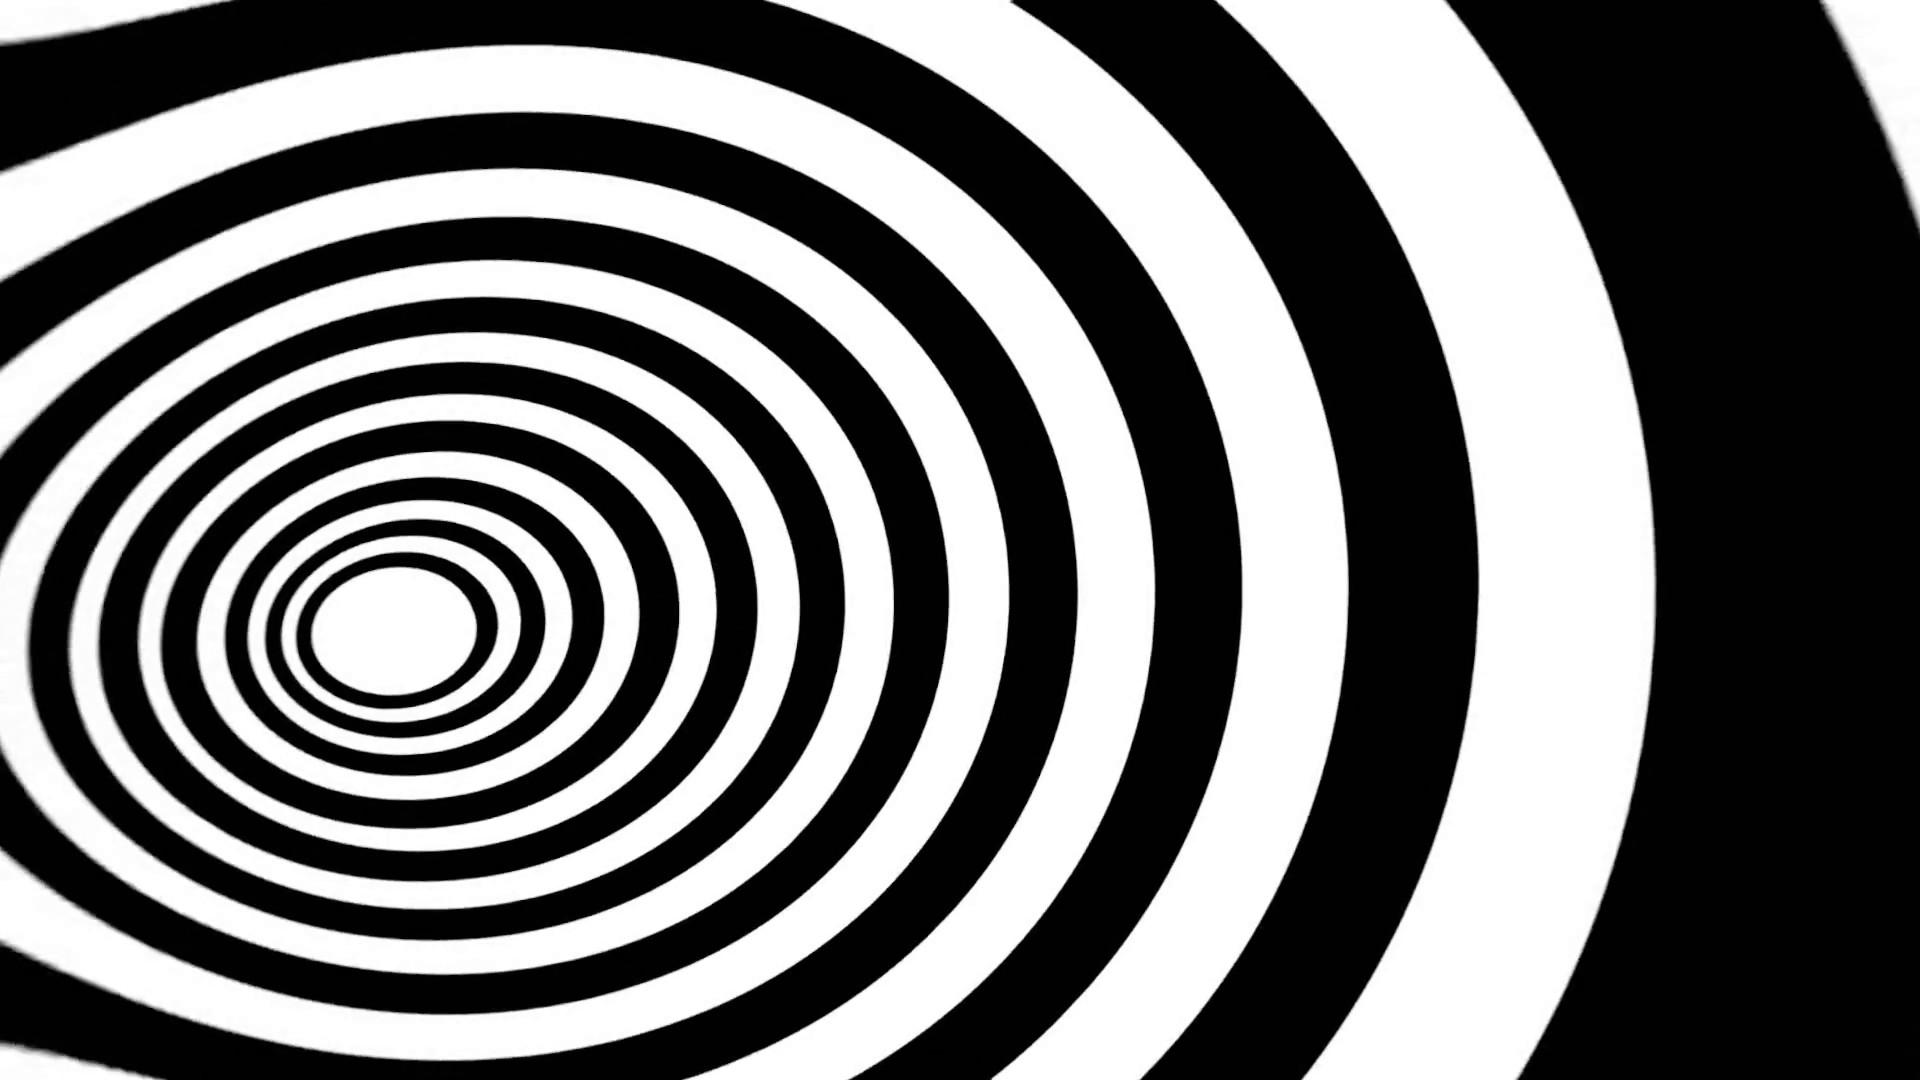 Hypnotic Spiral Eye BW. An animated spiral (eye shape), slow rotation.  Black and white. Seamless loop. Stock Video Footage – VideoBlocks